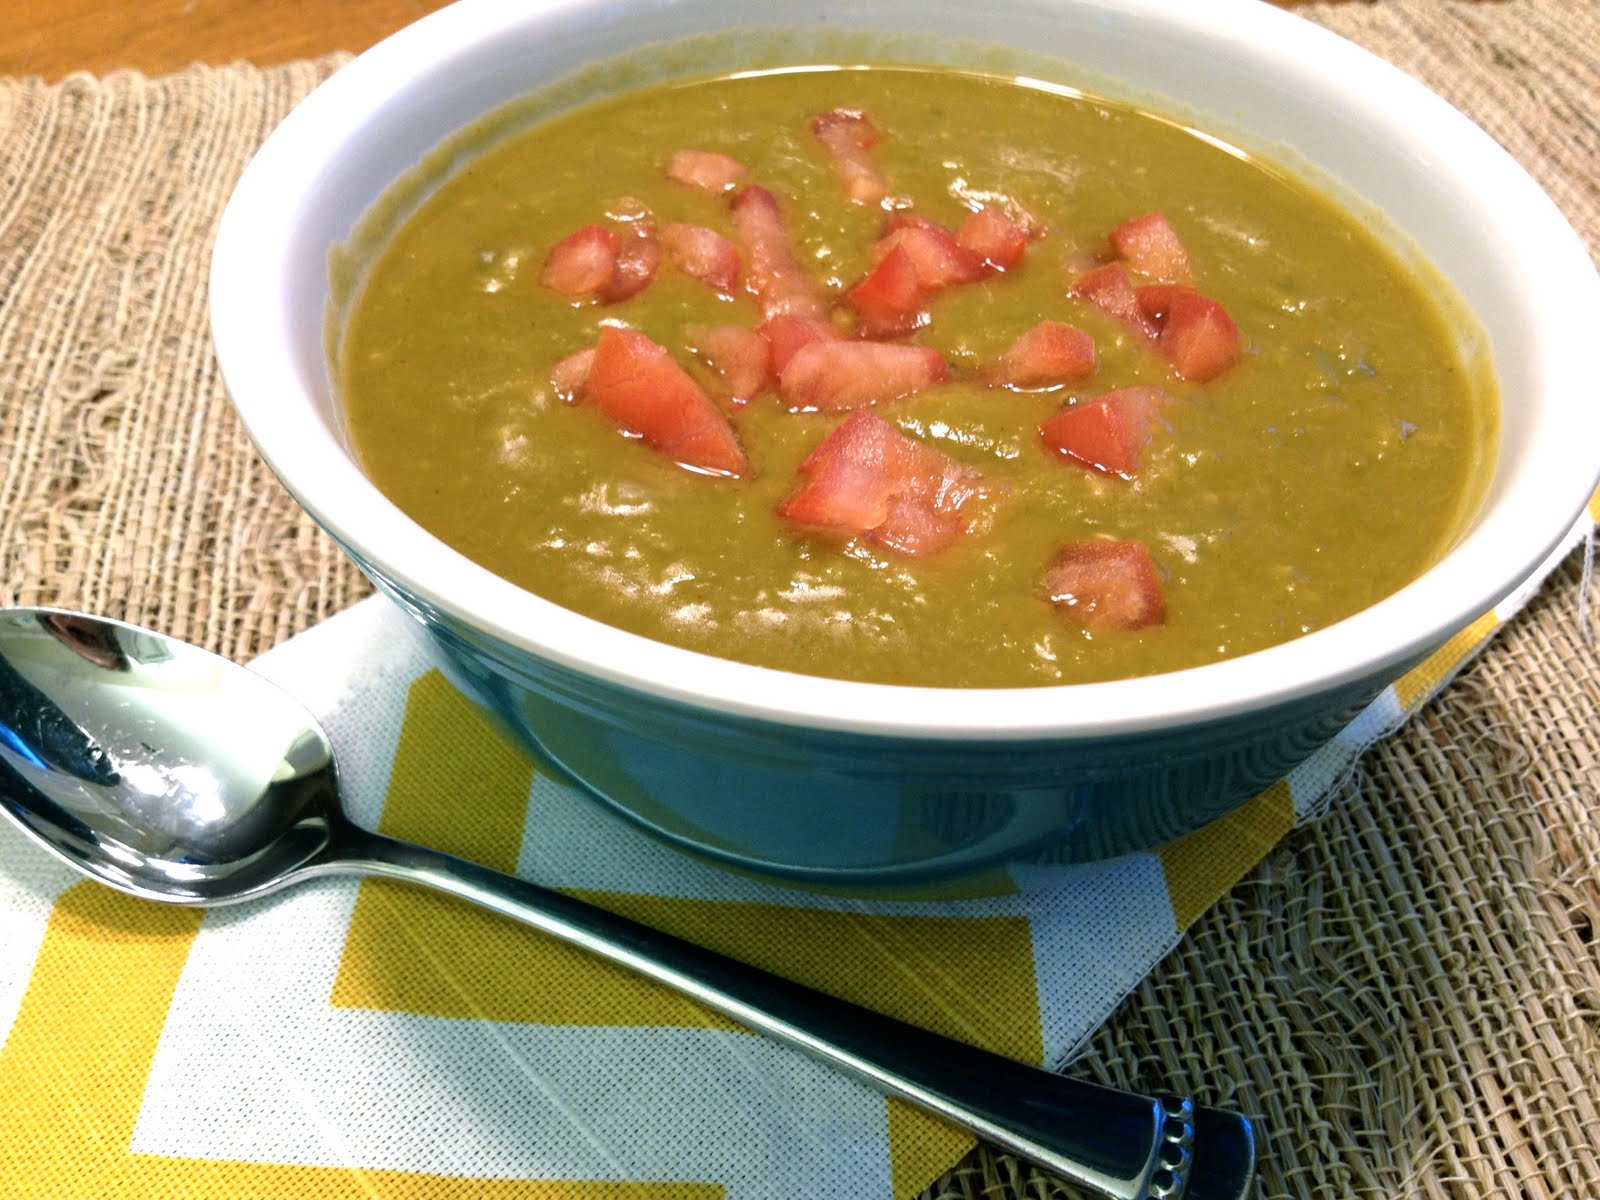 ... , Fresh and mostly Veggie: Crock Pot Vegan Split Pea and Potato Soup